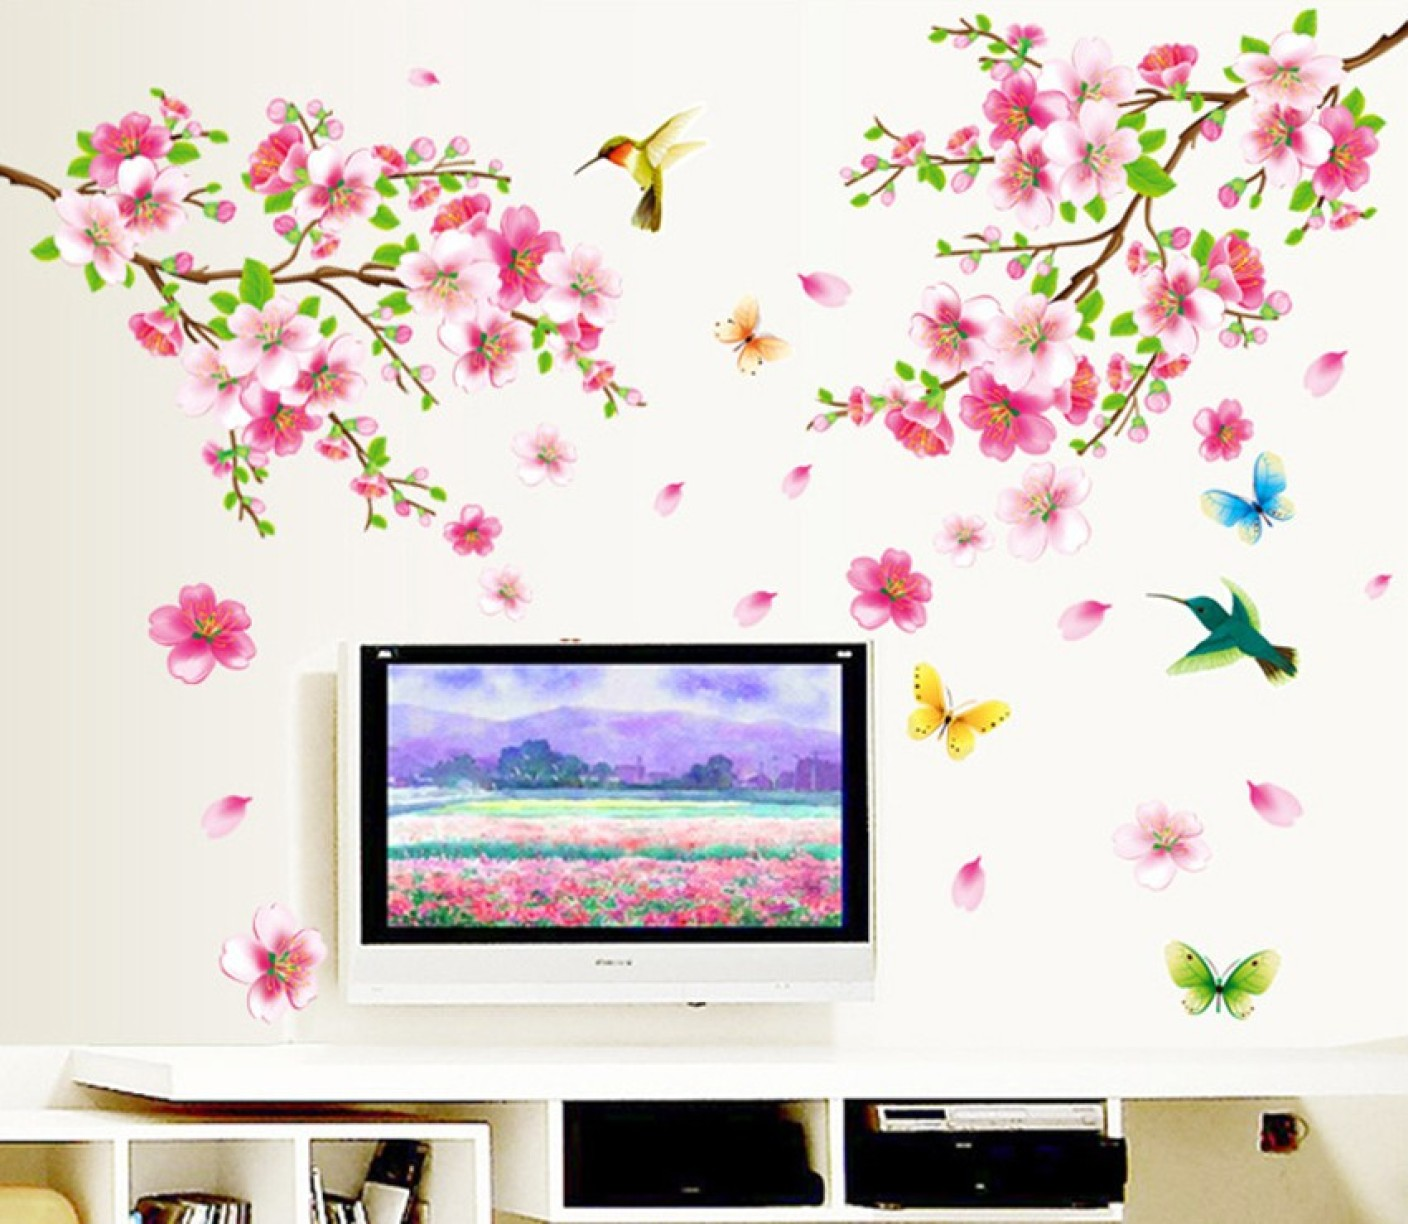 Wall stickers buy online - Wall Decals Stickers Buy Wall Decals Wall Stickers Online At